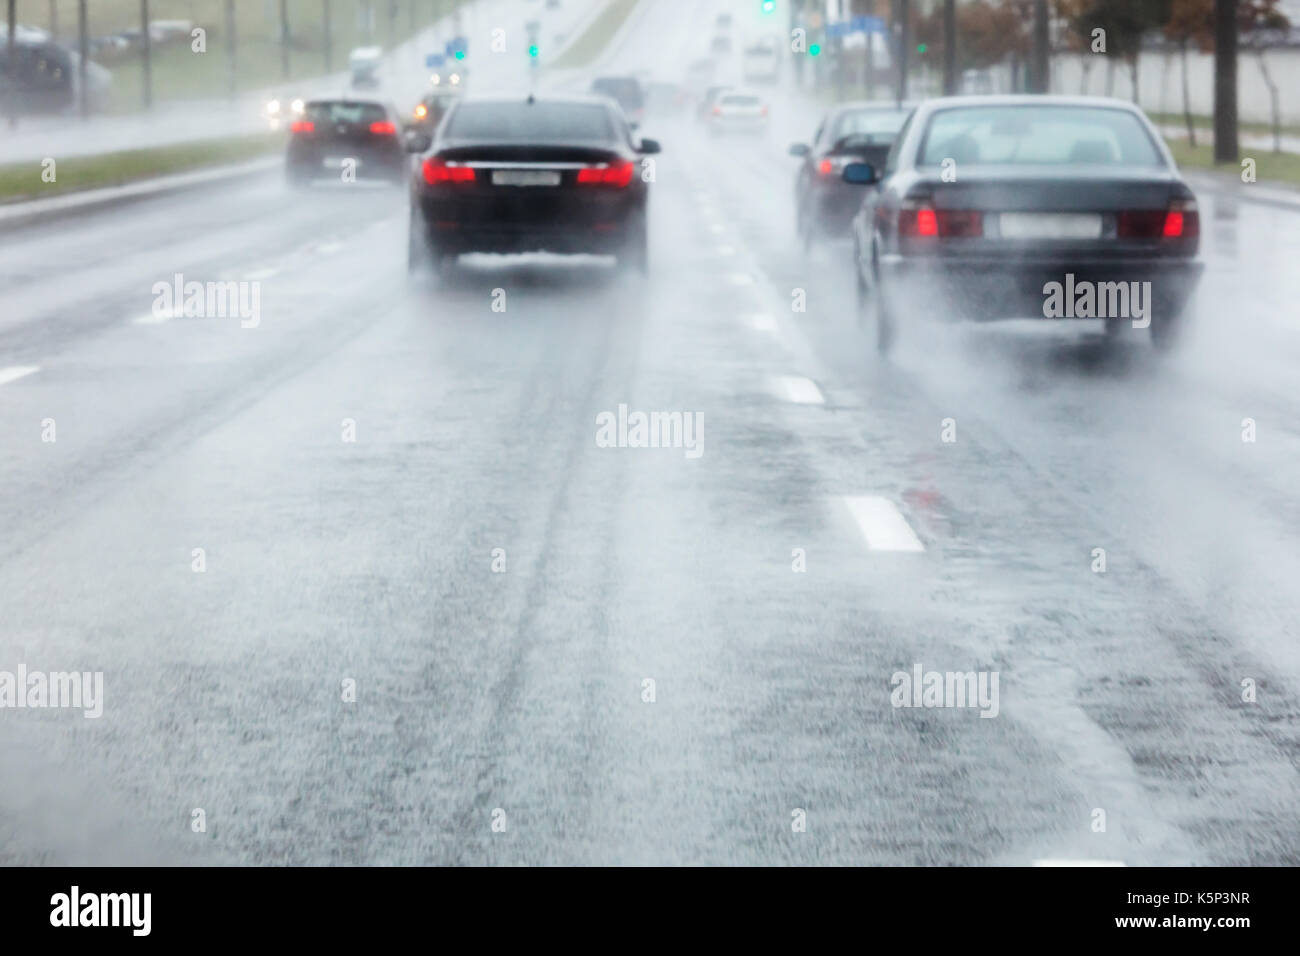 cars moving in wet road with water spraying from the wheels. blurred view through windshield. - Stock Image